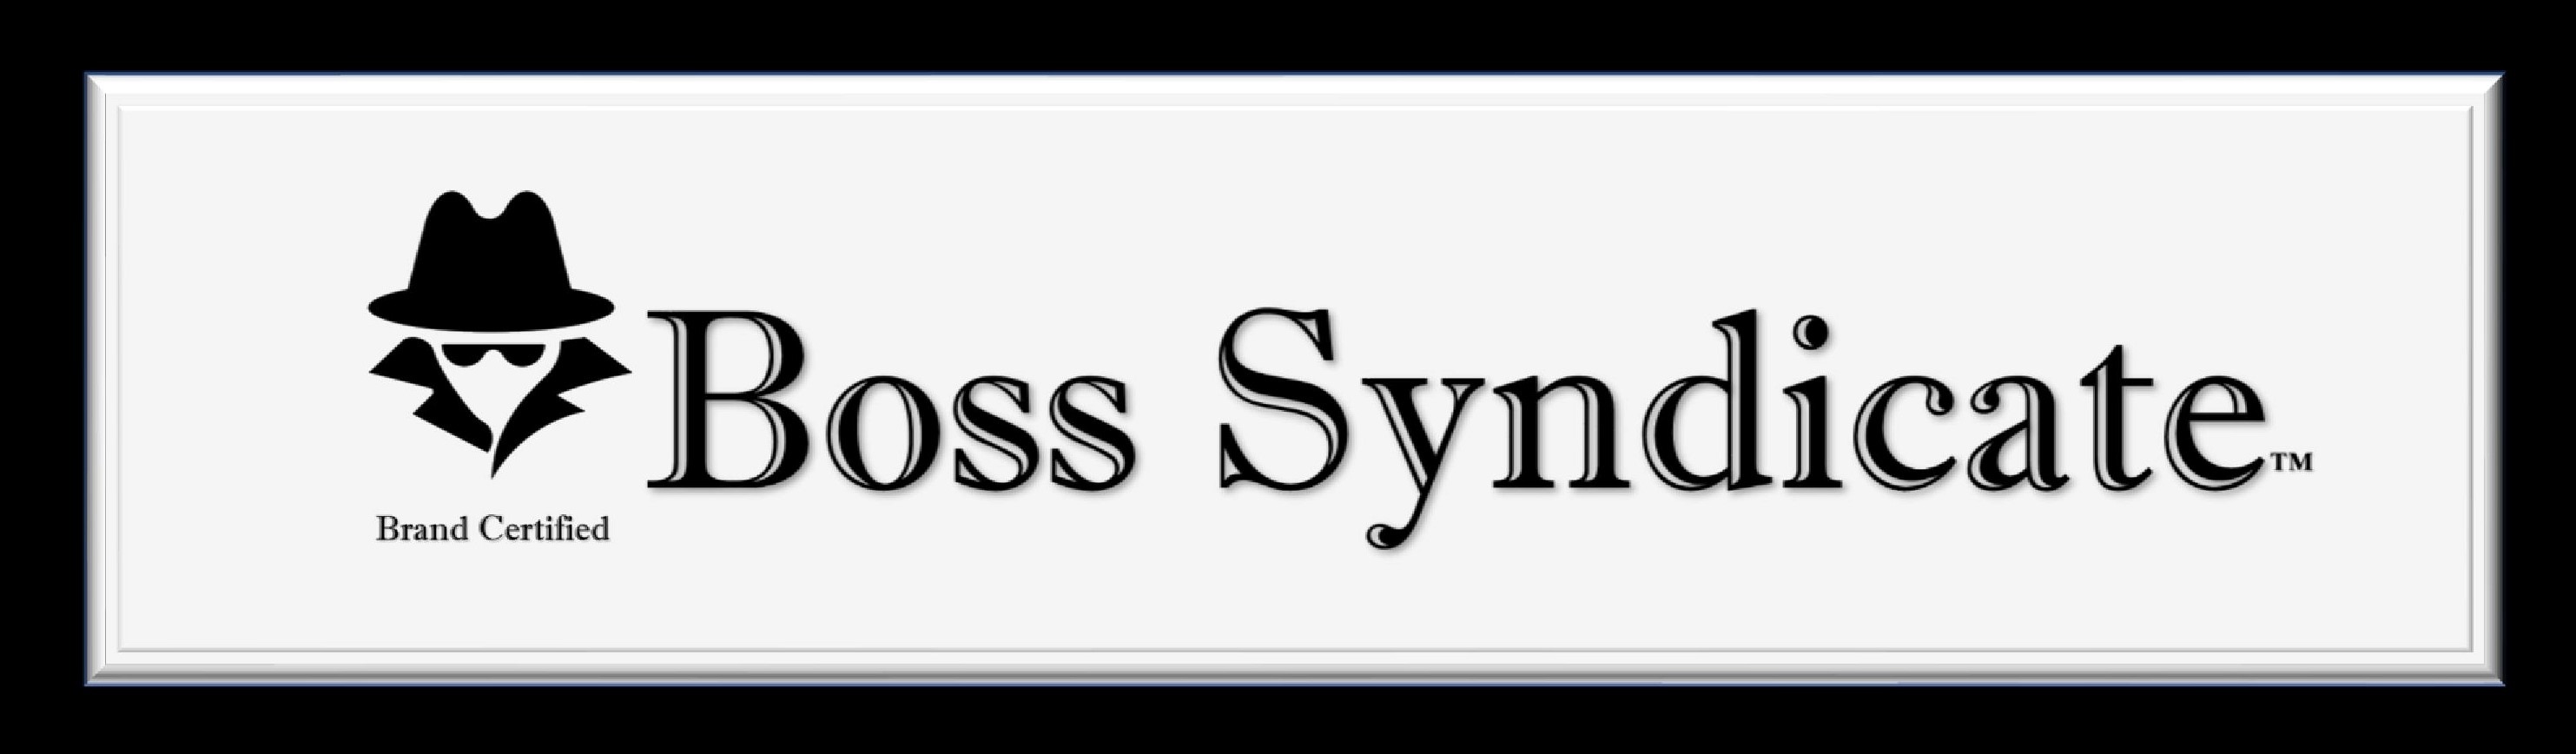 Boss Syndicate Official Brand Certified